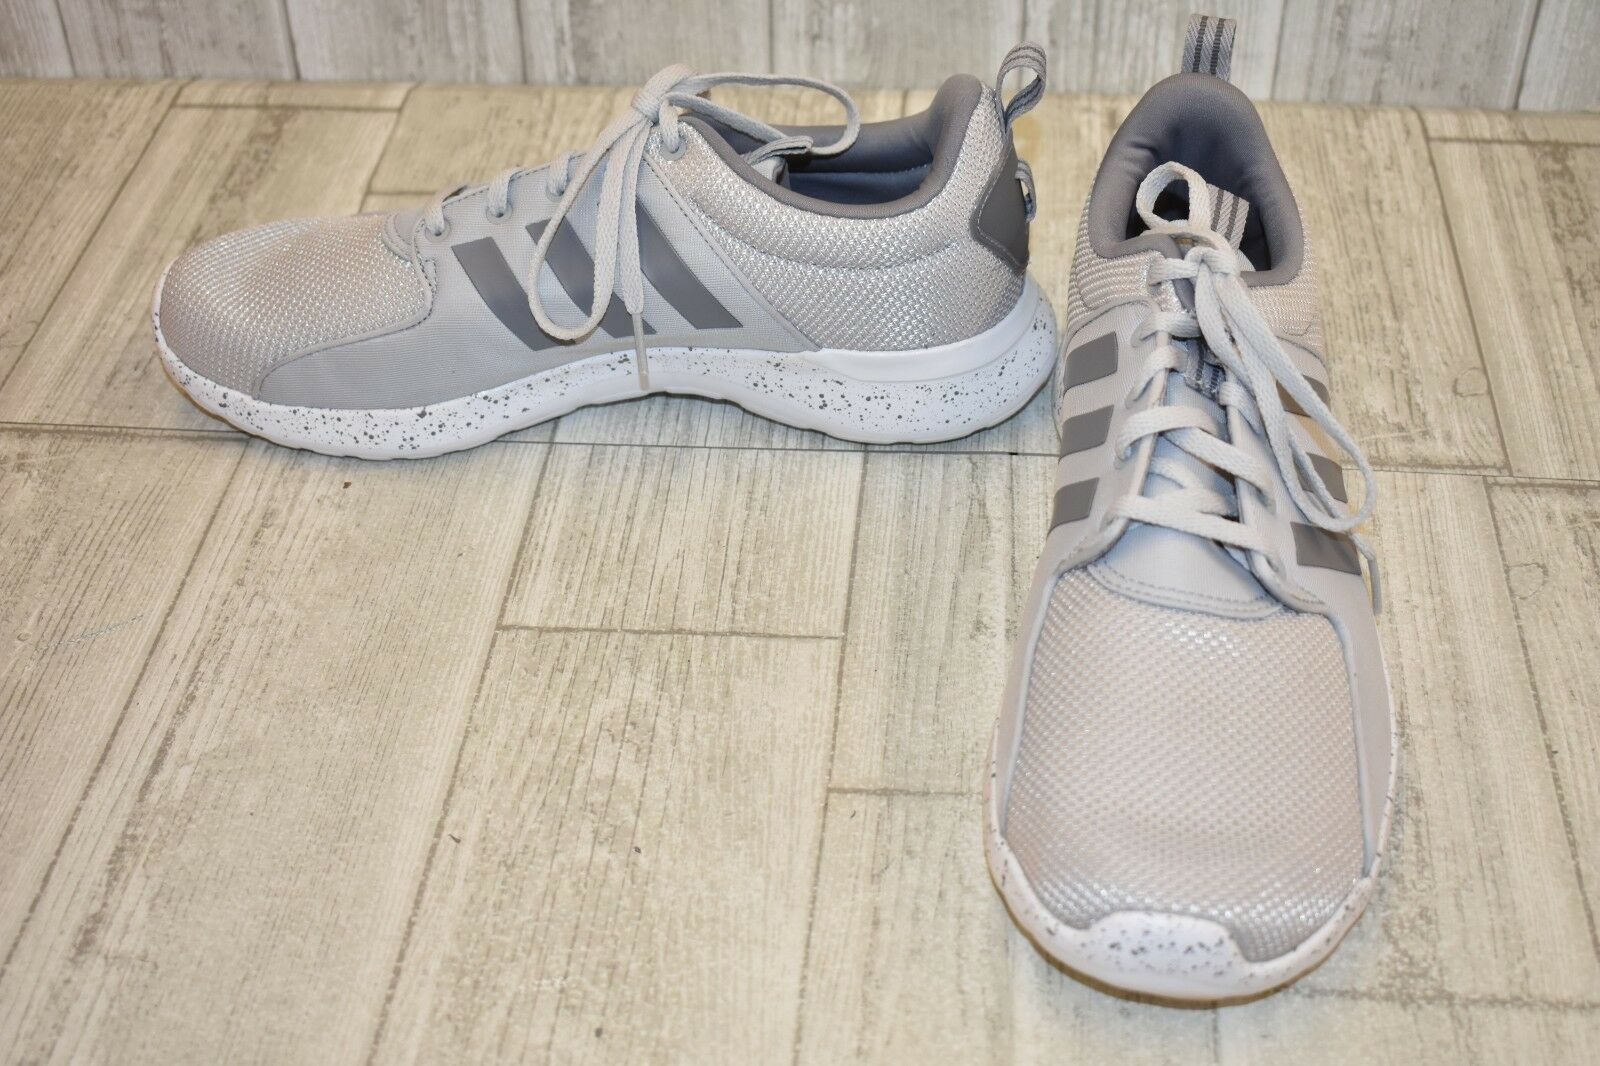 Adidas Cloudfoam Lite Racer Sneakers-Men's size 10.5 Grey